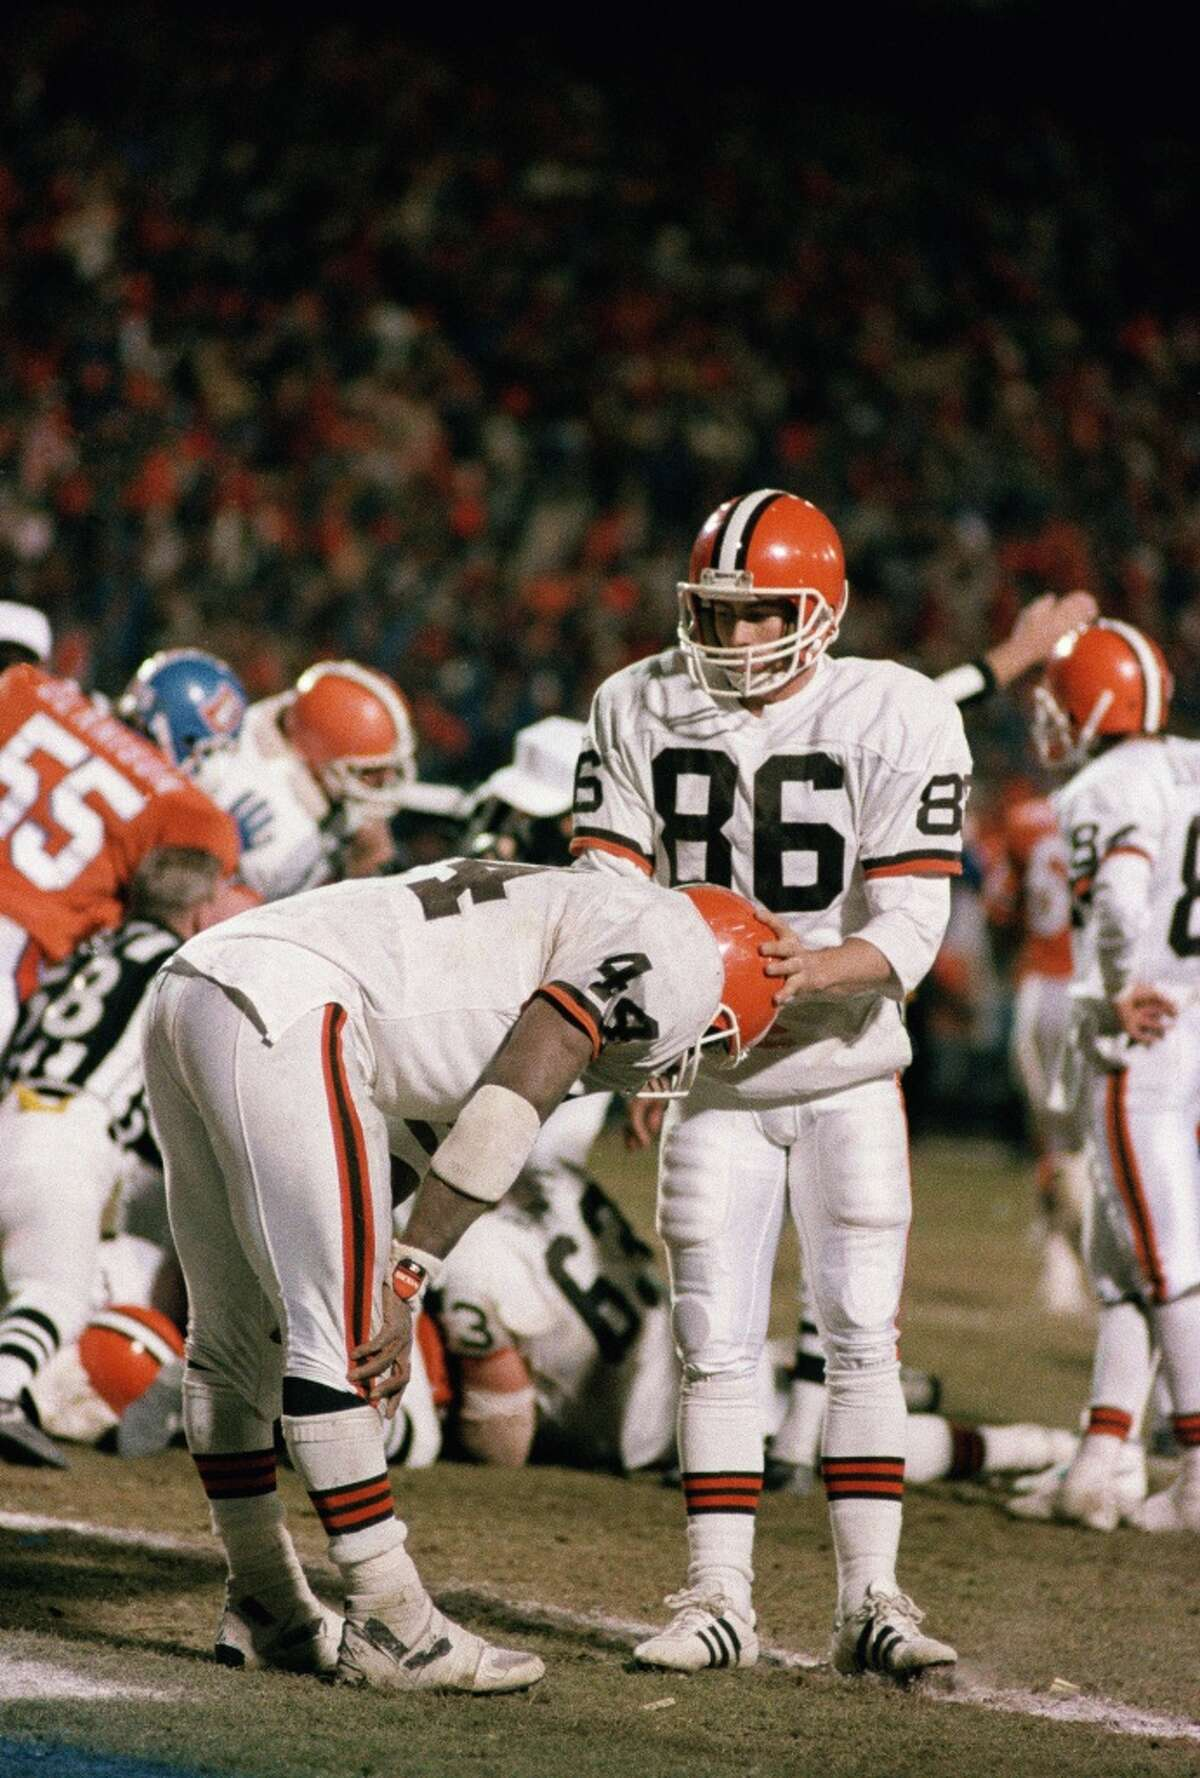 AFC, 1987: BRONCOS 38, BROWNS 33 One year after enduring The Drive, Cleveland was handed another bitter loss. The Browns were poised to tie the score in the final minutes, but running back Earnest Byner was stripped of the ball near the goal line by Denver's Jeremiah Castille, with the Broncos recovering. In Cleveland, it's called